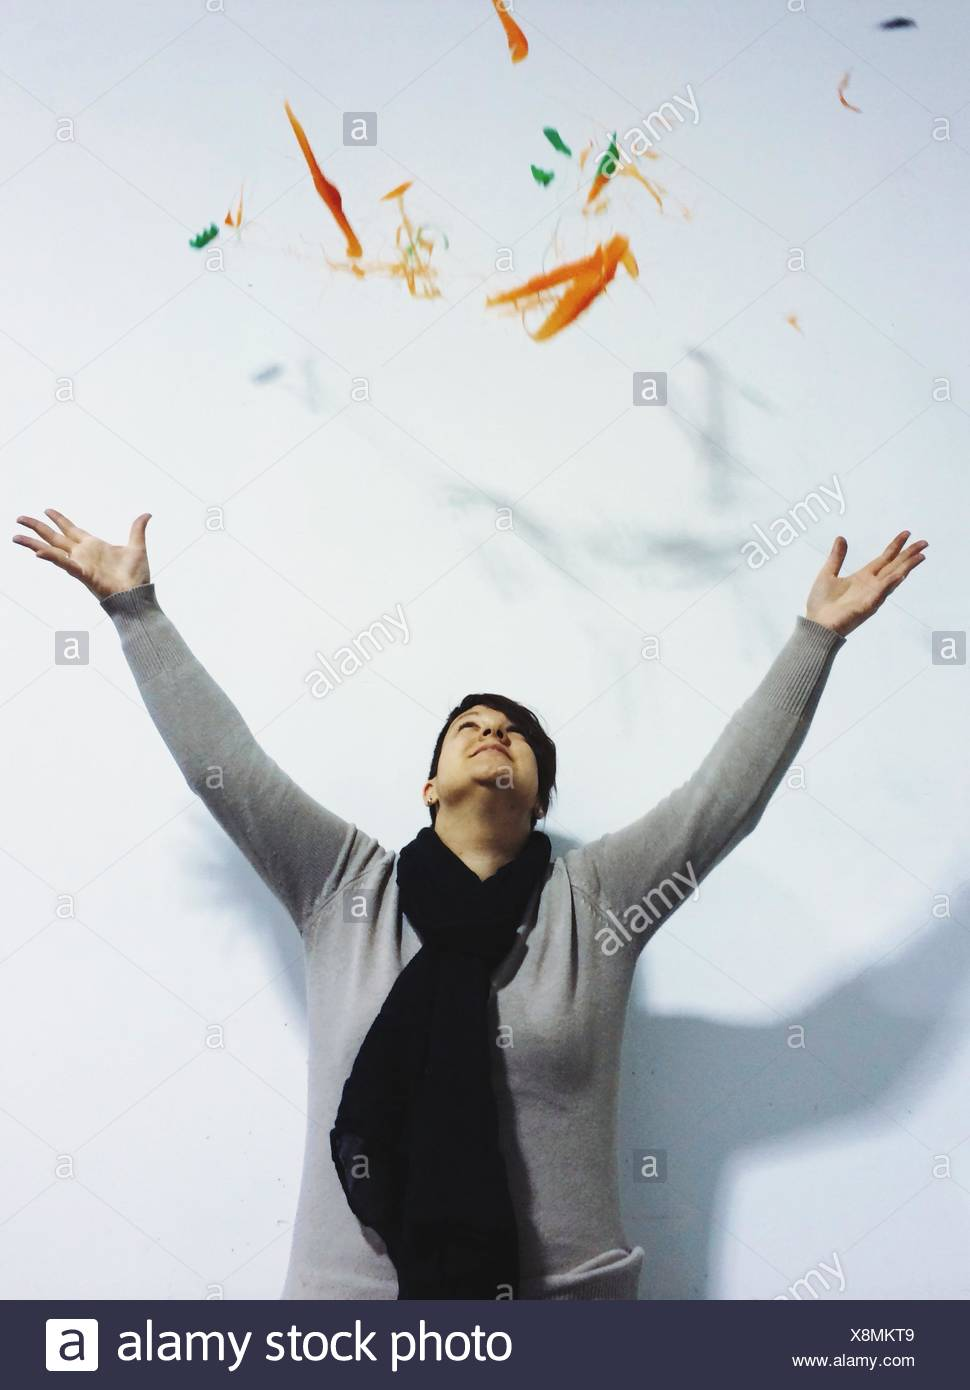 Young Woman Throwing Colored Particles Against White Background - Stock Image